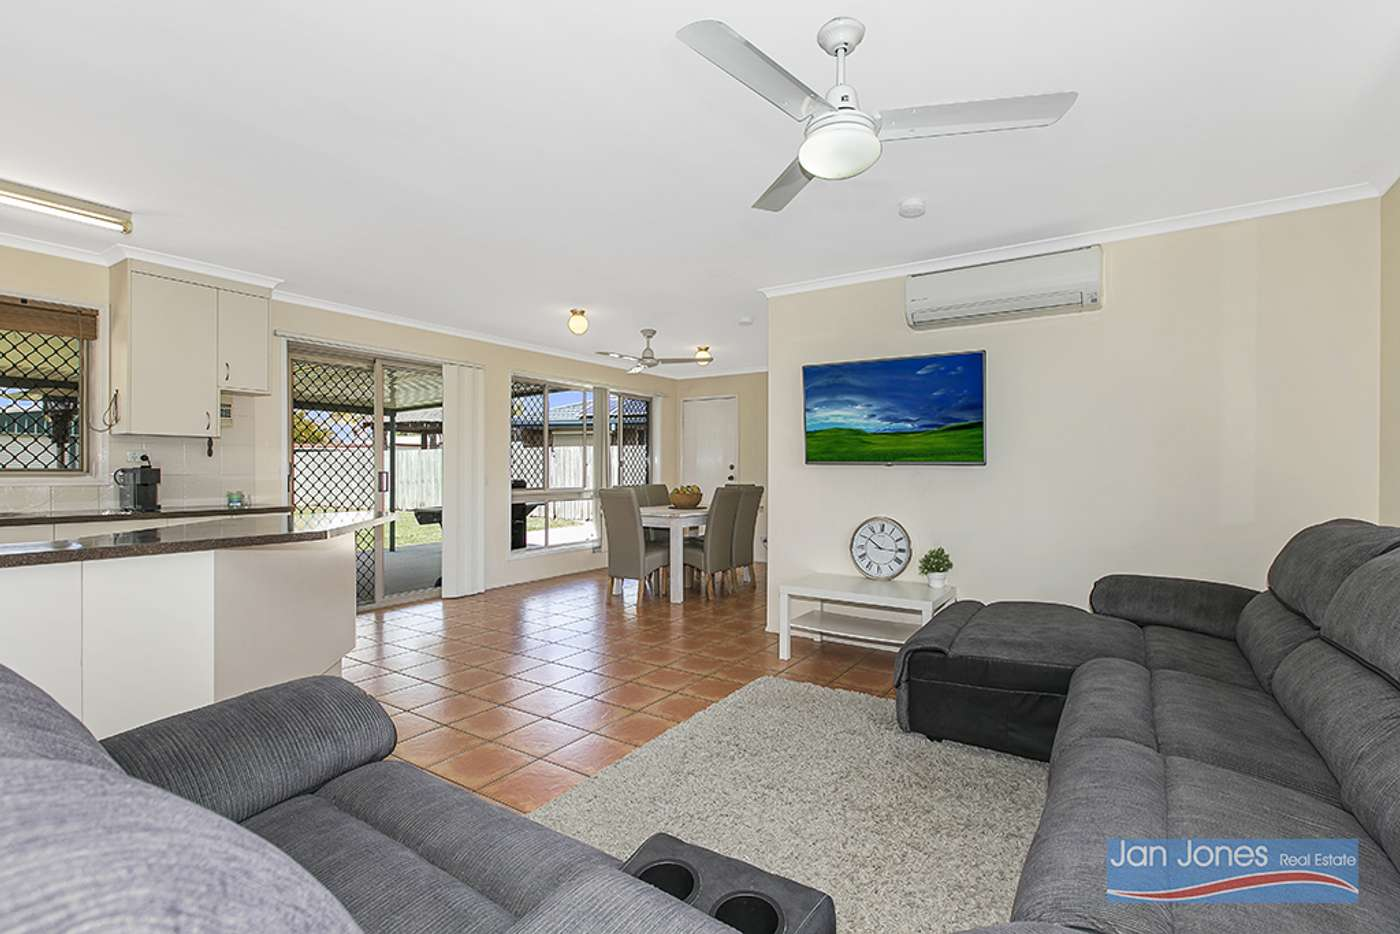 Sixth view of Homely house listing, 10 Cavalli Cres, Burpengary QLD 4505